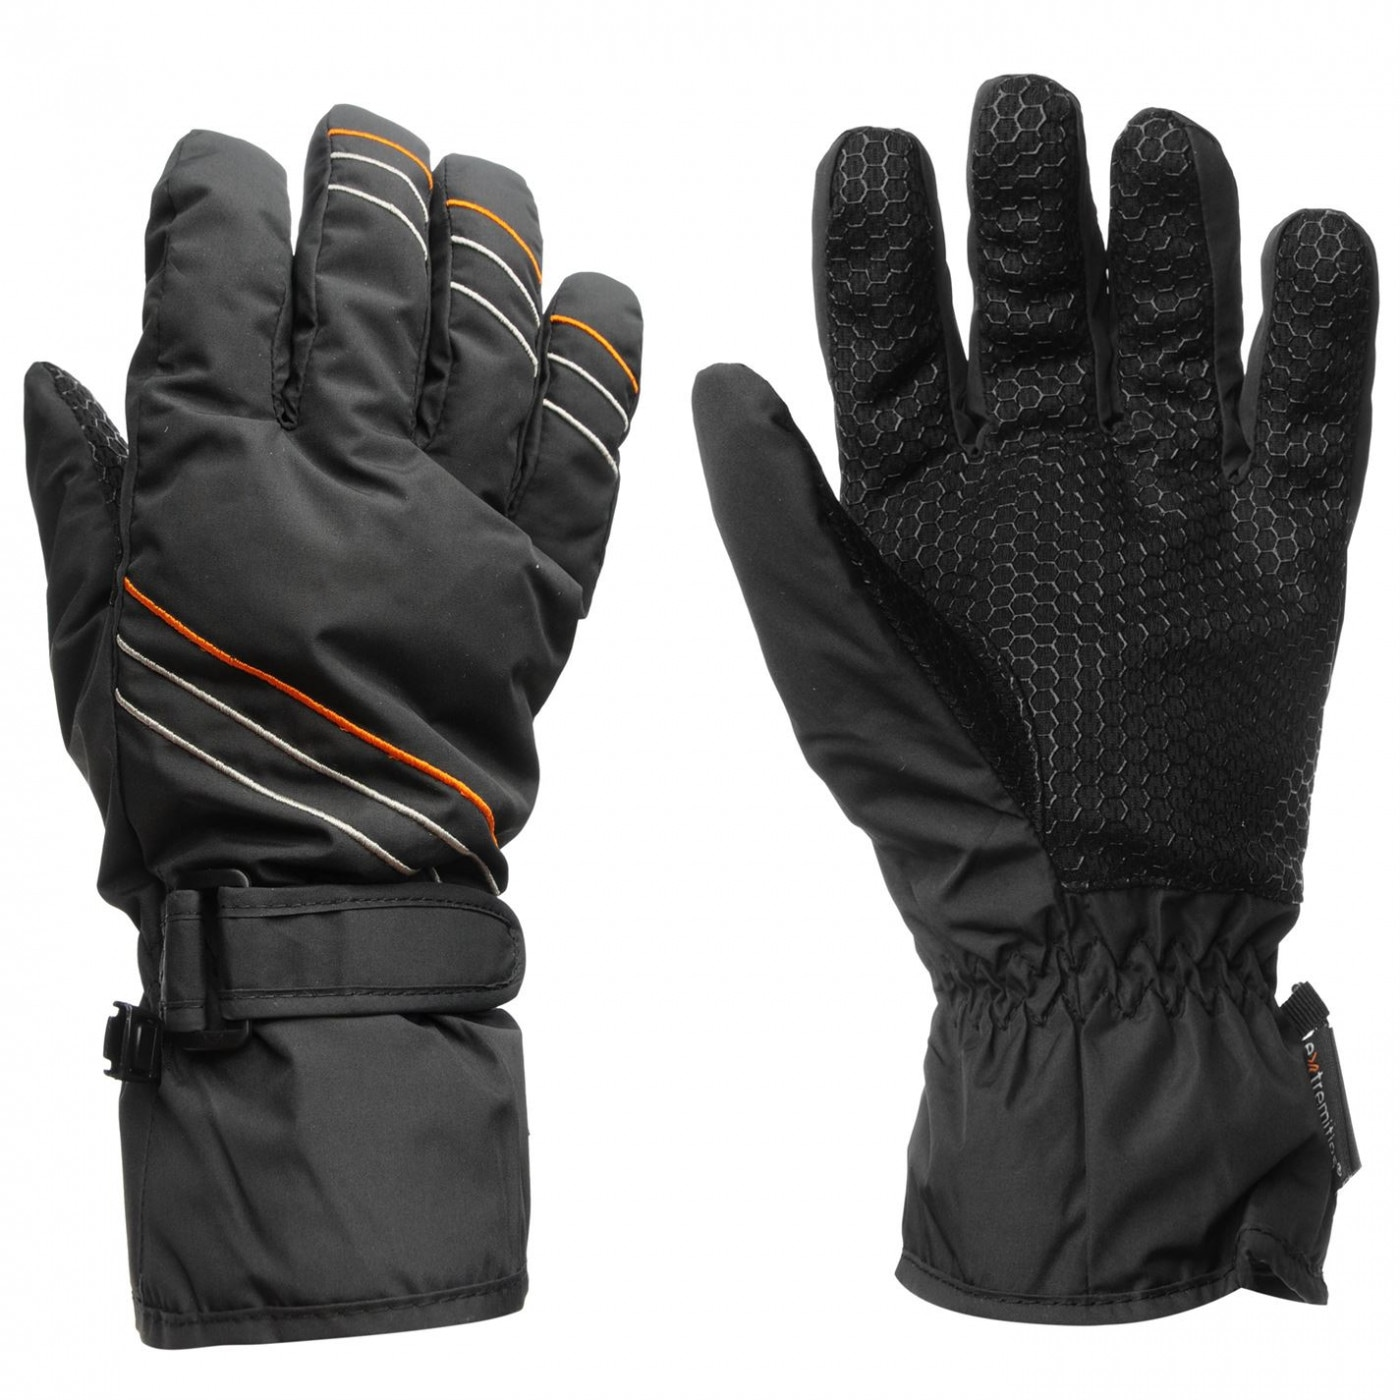 Extremities Vapor GTX Gloves